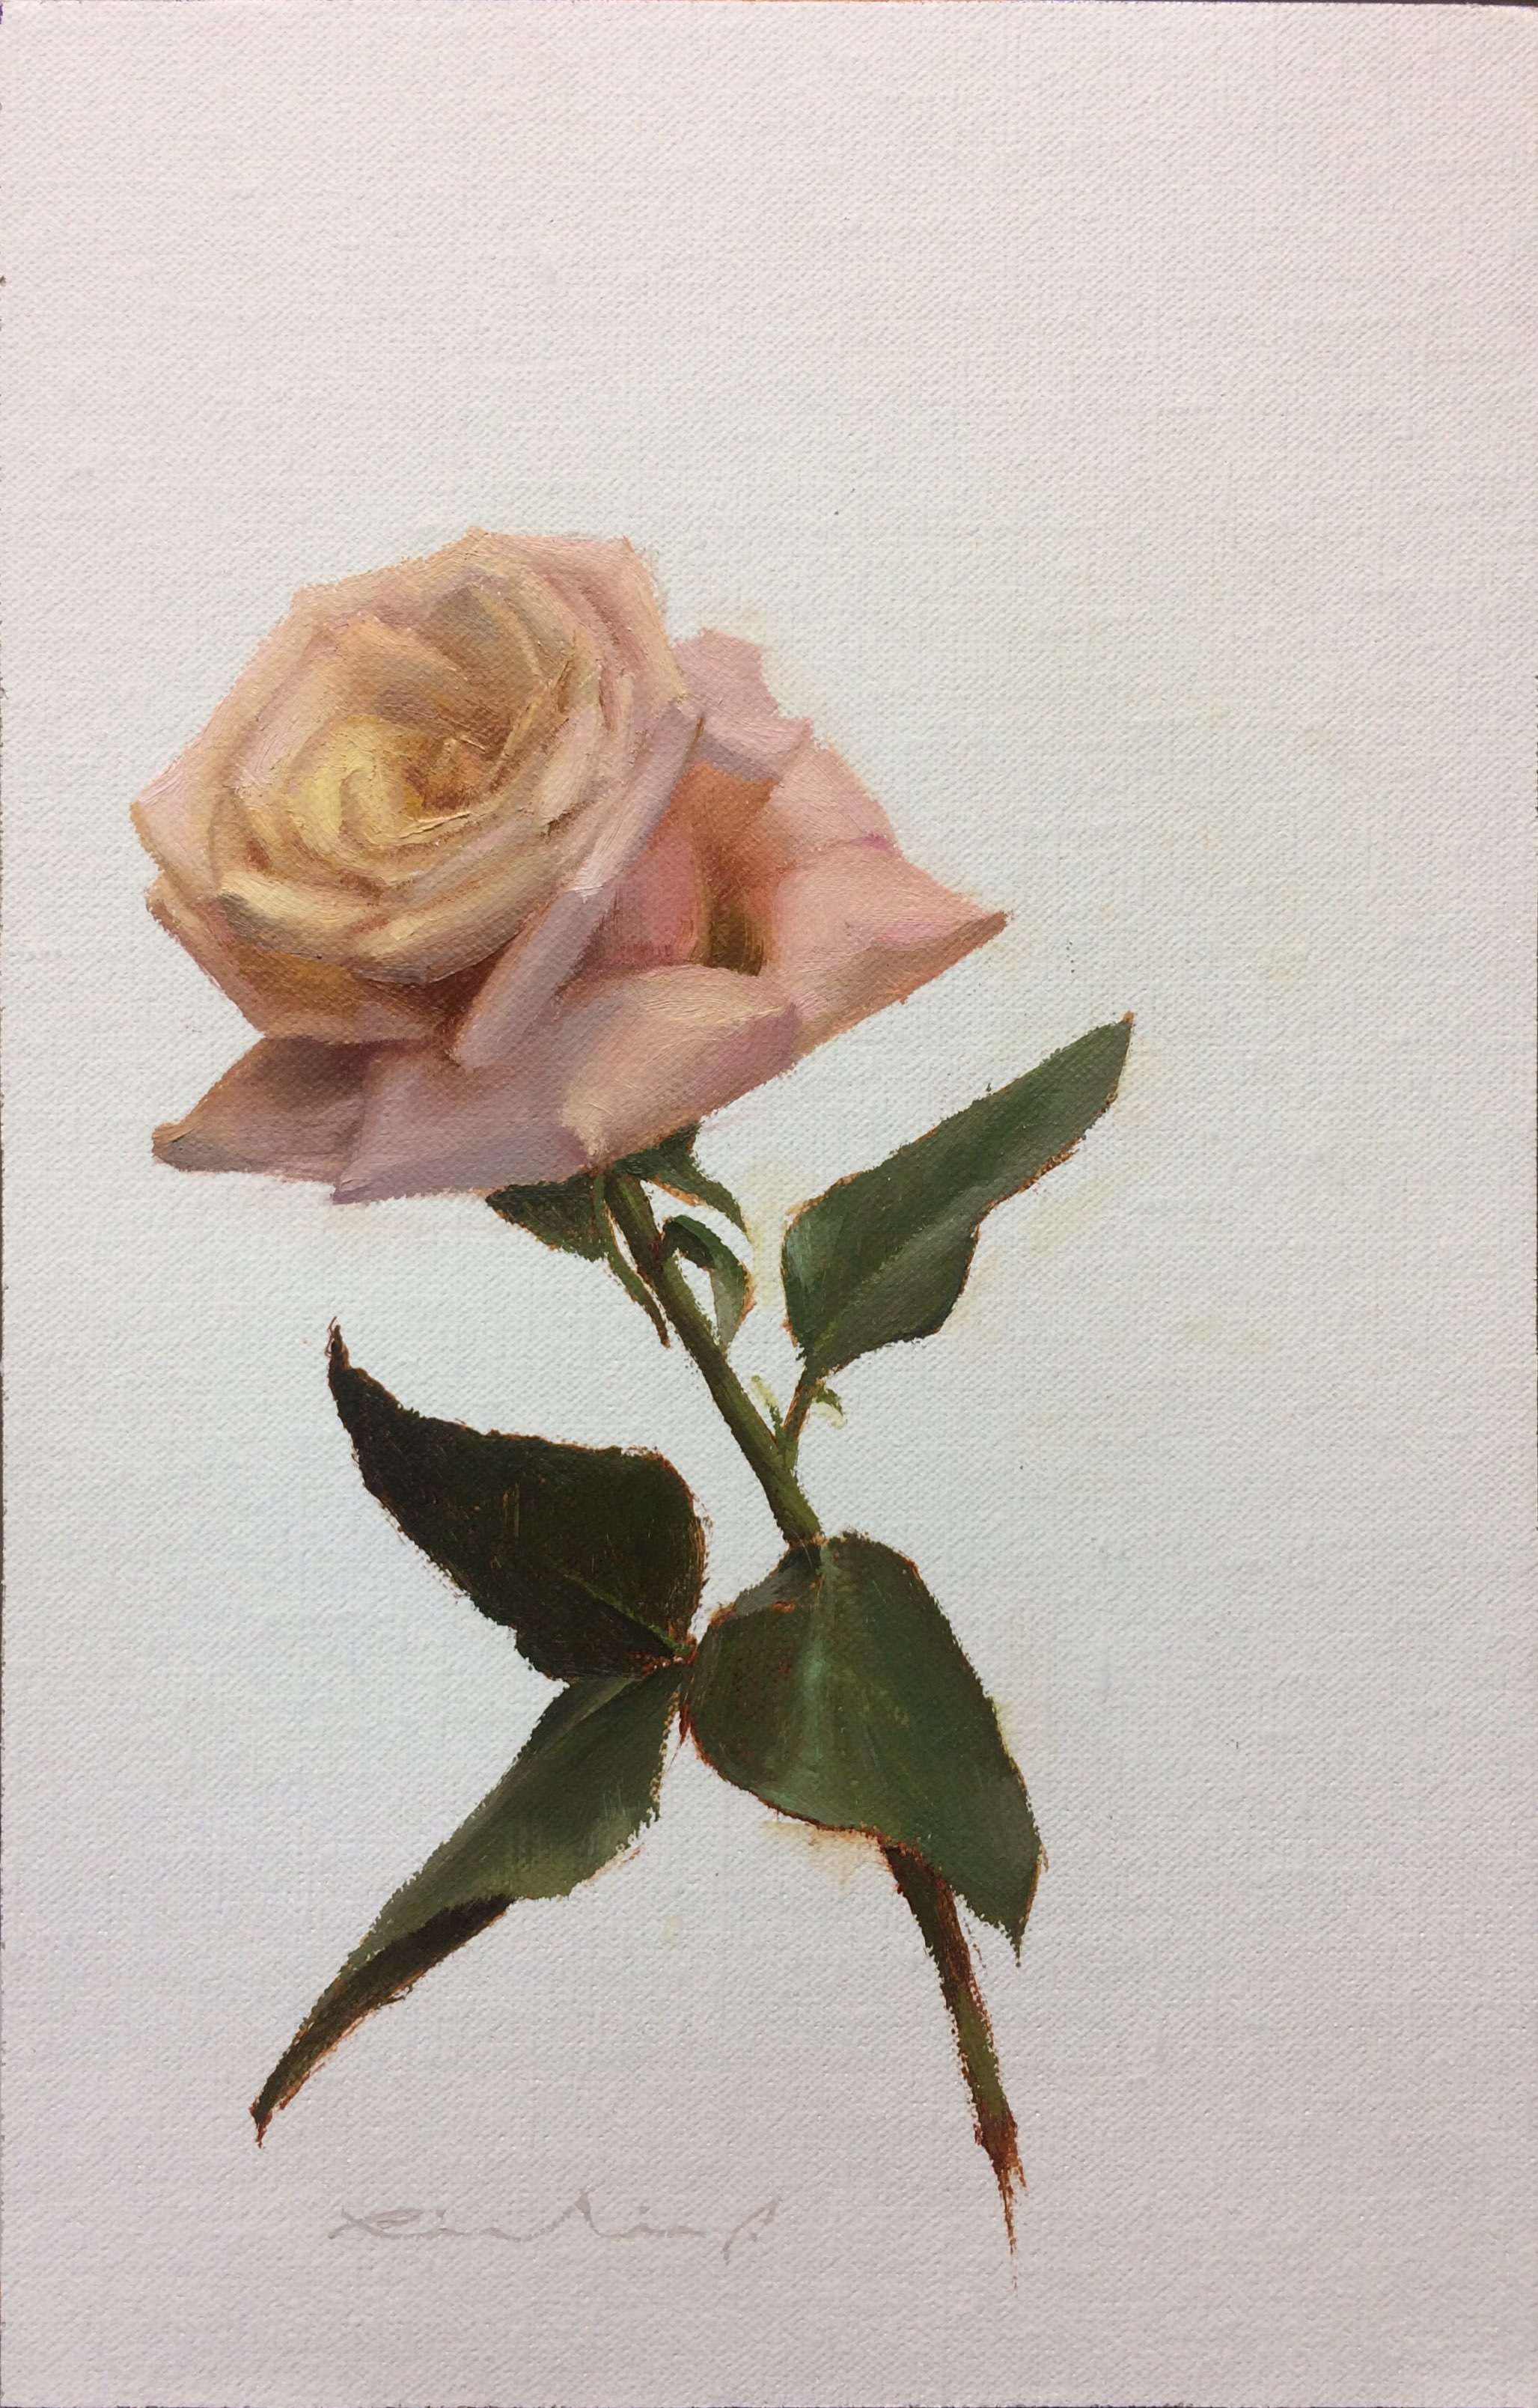 """Bed of Roses 3""  $650.00  8 x 12 inches 